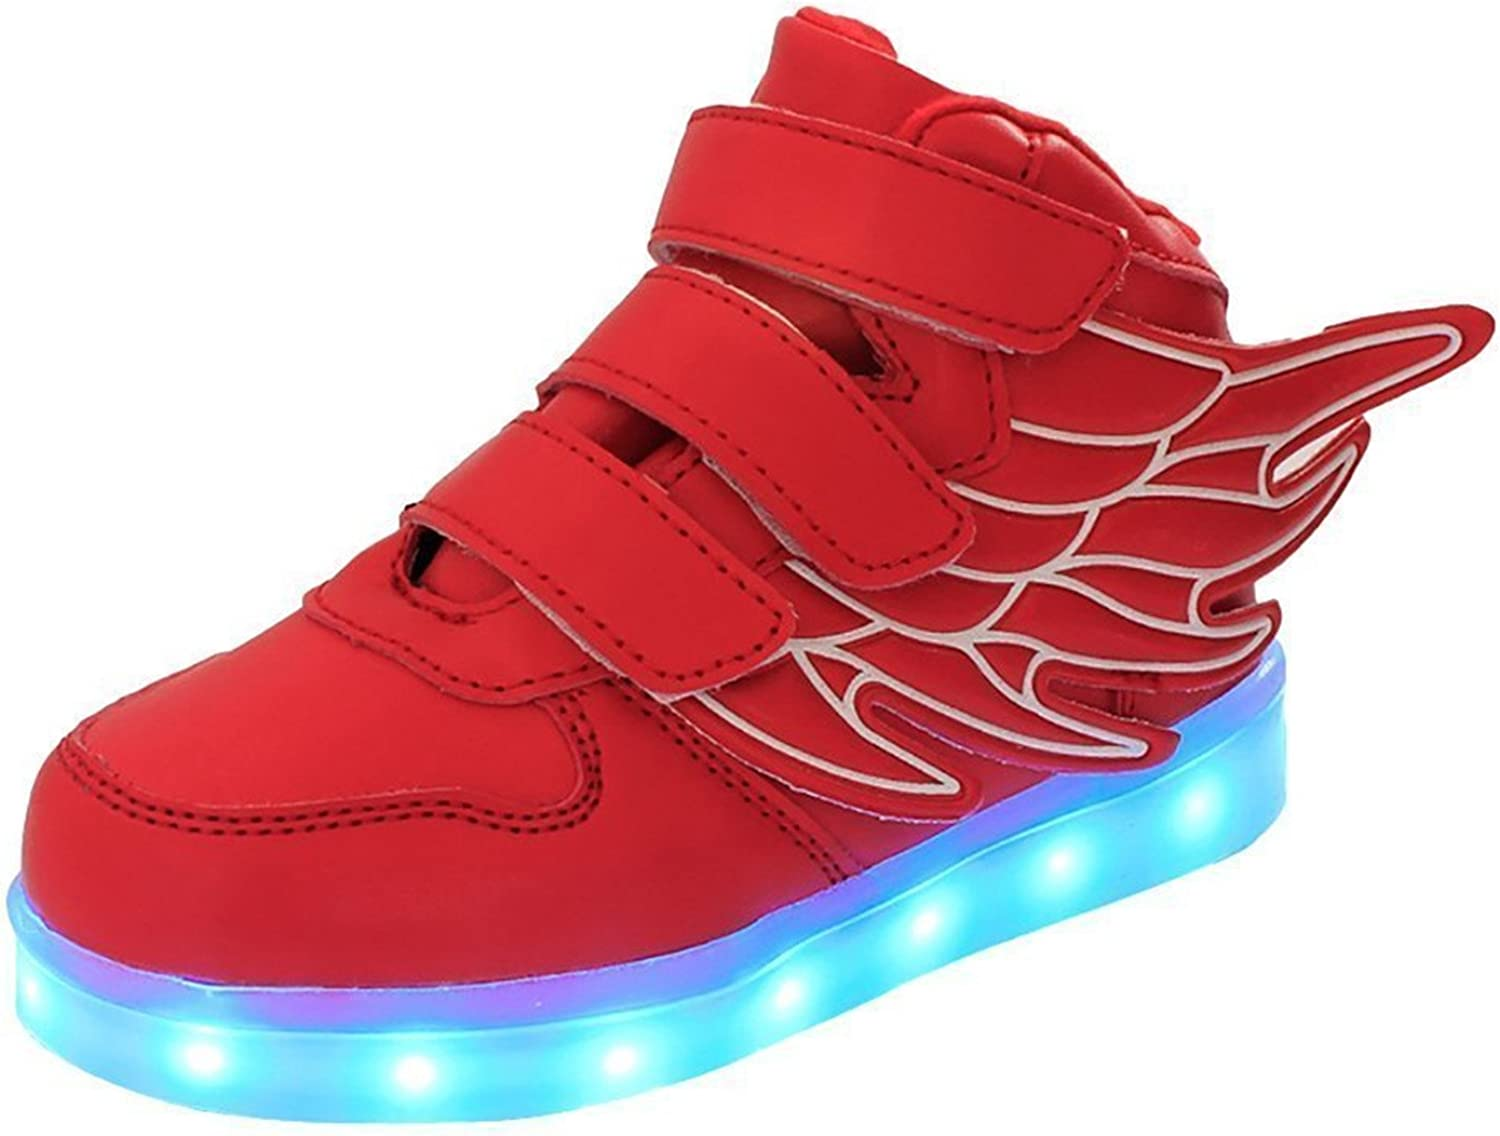 Also Easy Stylish Kids LED Light up Sneaker Athletic Wings shoes High Student Dance Boot USB Charge (Little Kid, Black) Style